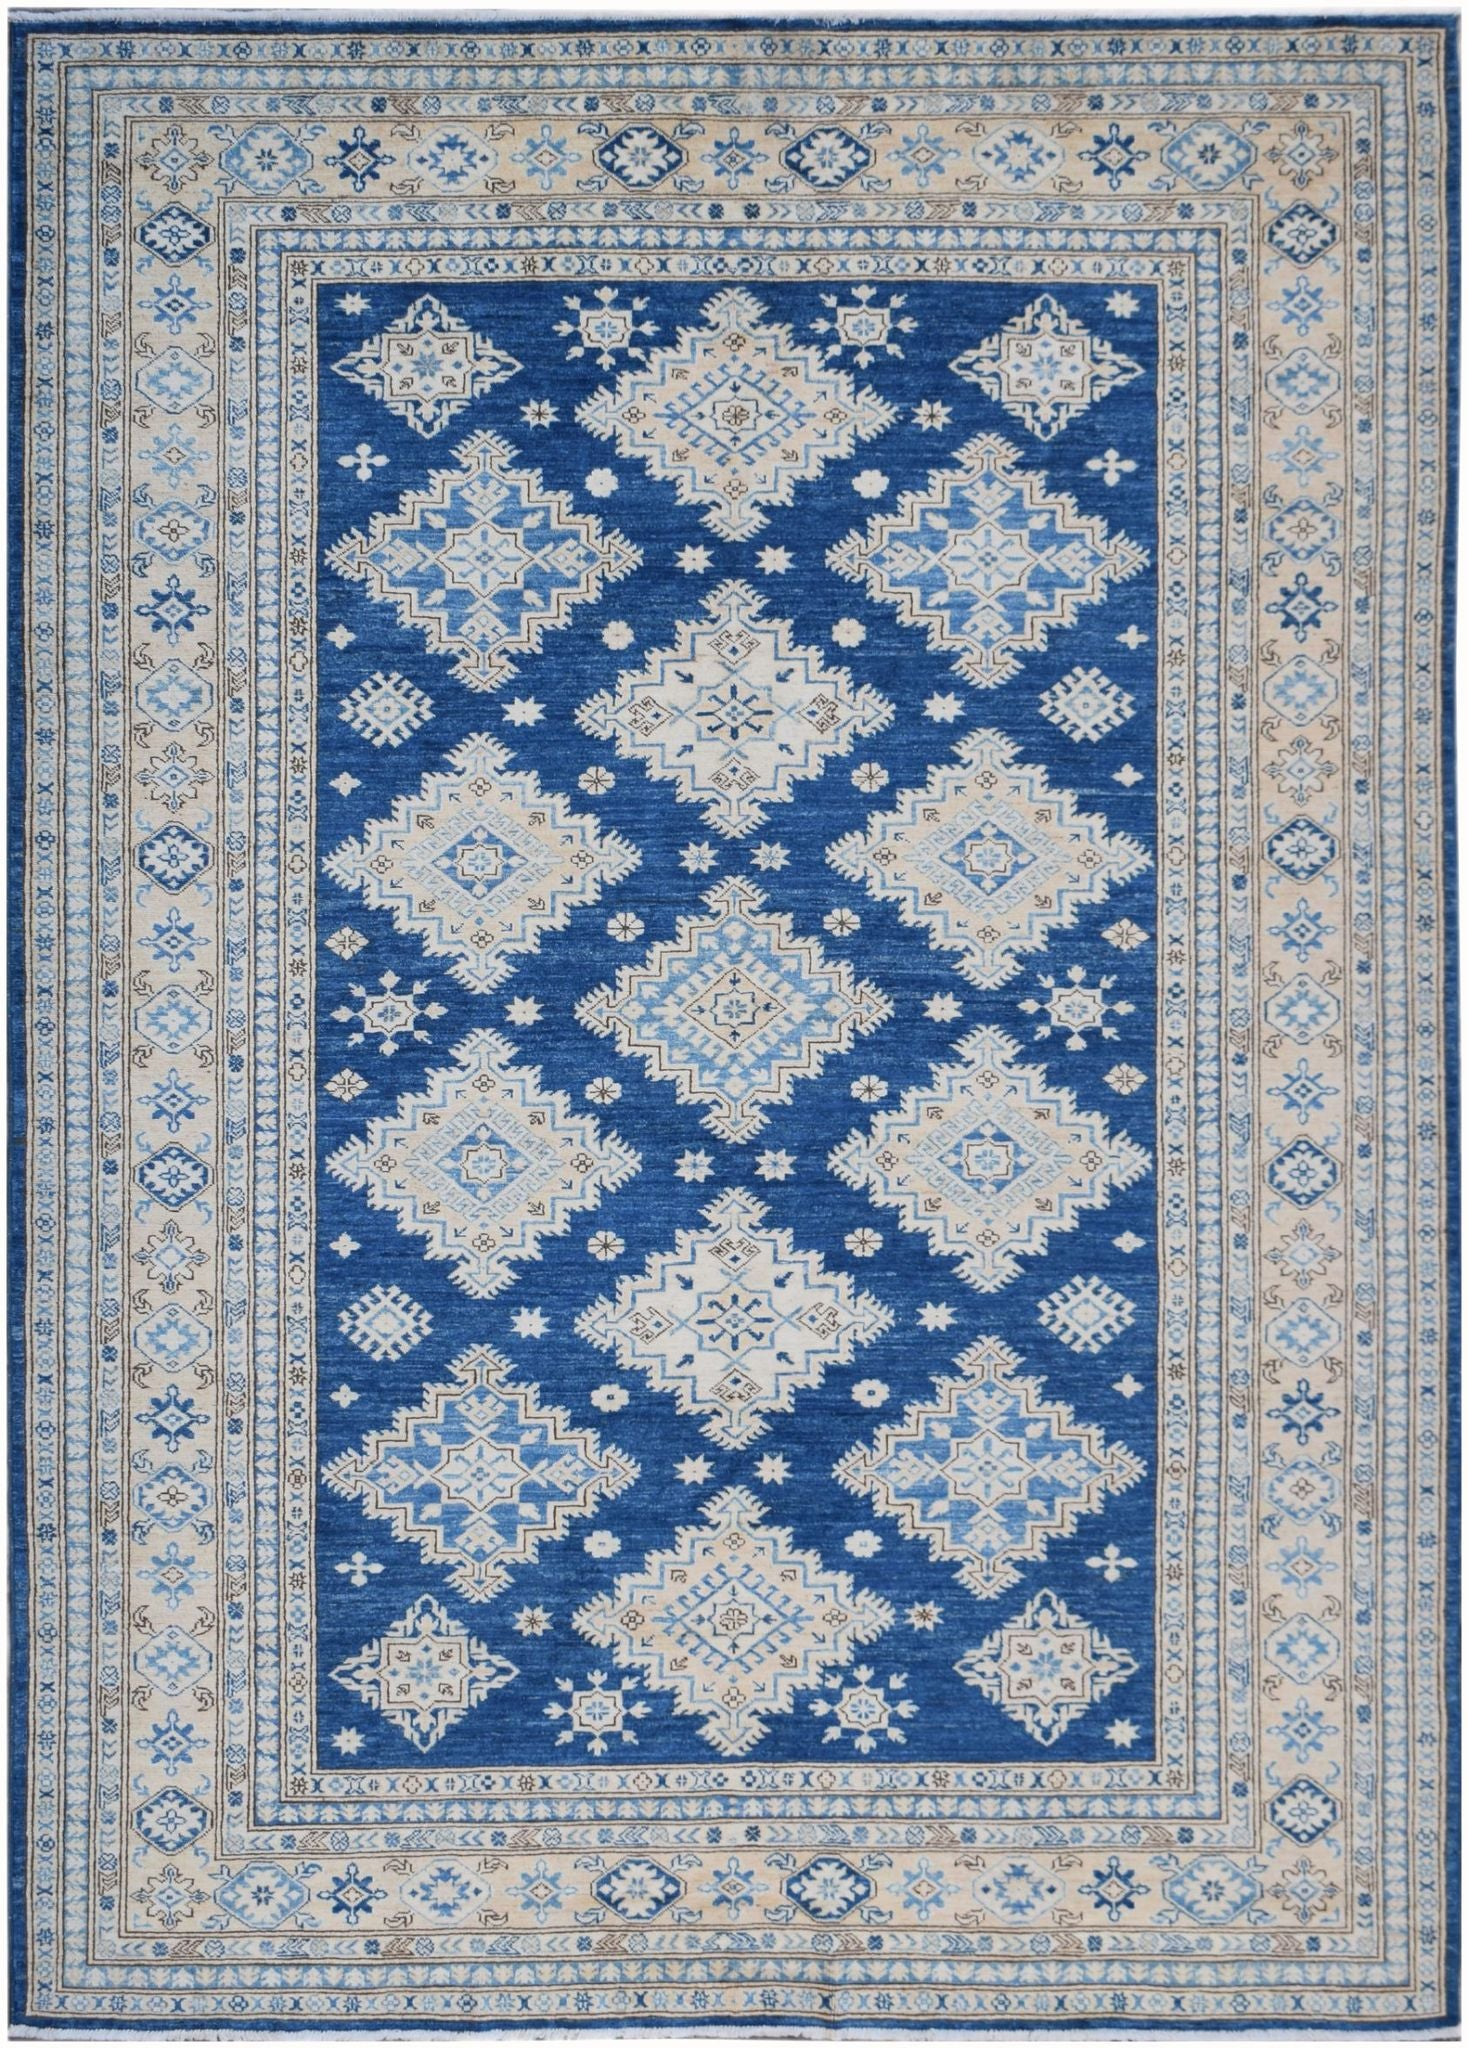 Handknotted Afghan Rug in Deep Blue